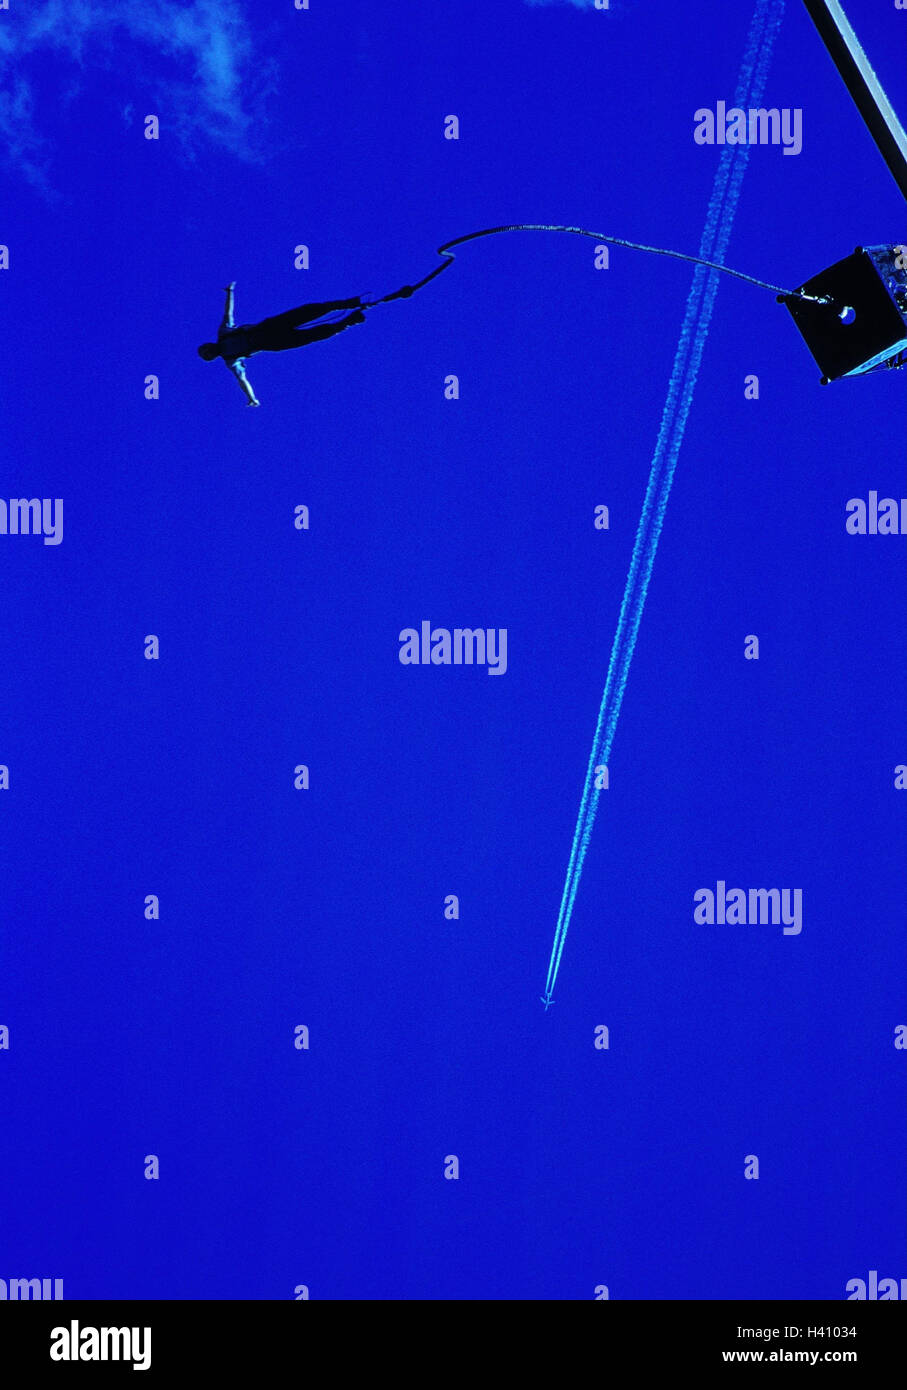 Bungeejumping, airplane, condensation trail, from below, outside, Bungee, Jumping, jumping, crack, fall, saved, Stock Photo